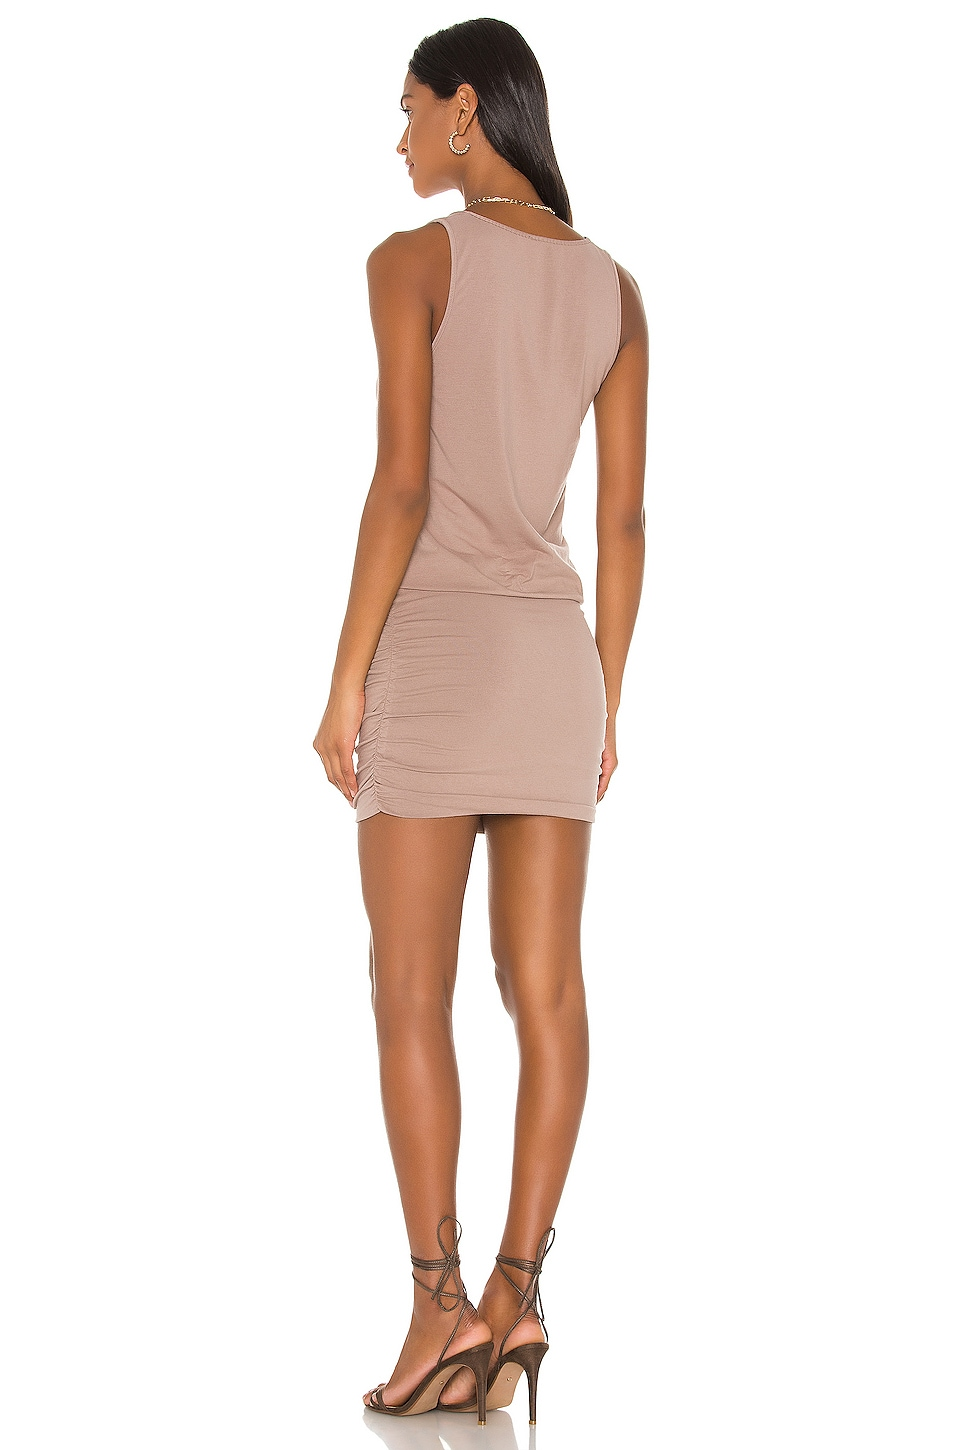 Draped Modal Jersey Mini Dress, view 3, click to view large image.